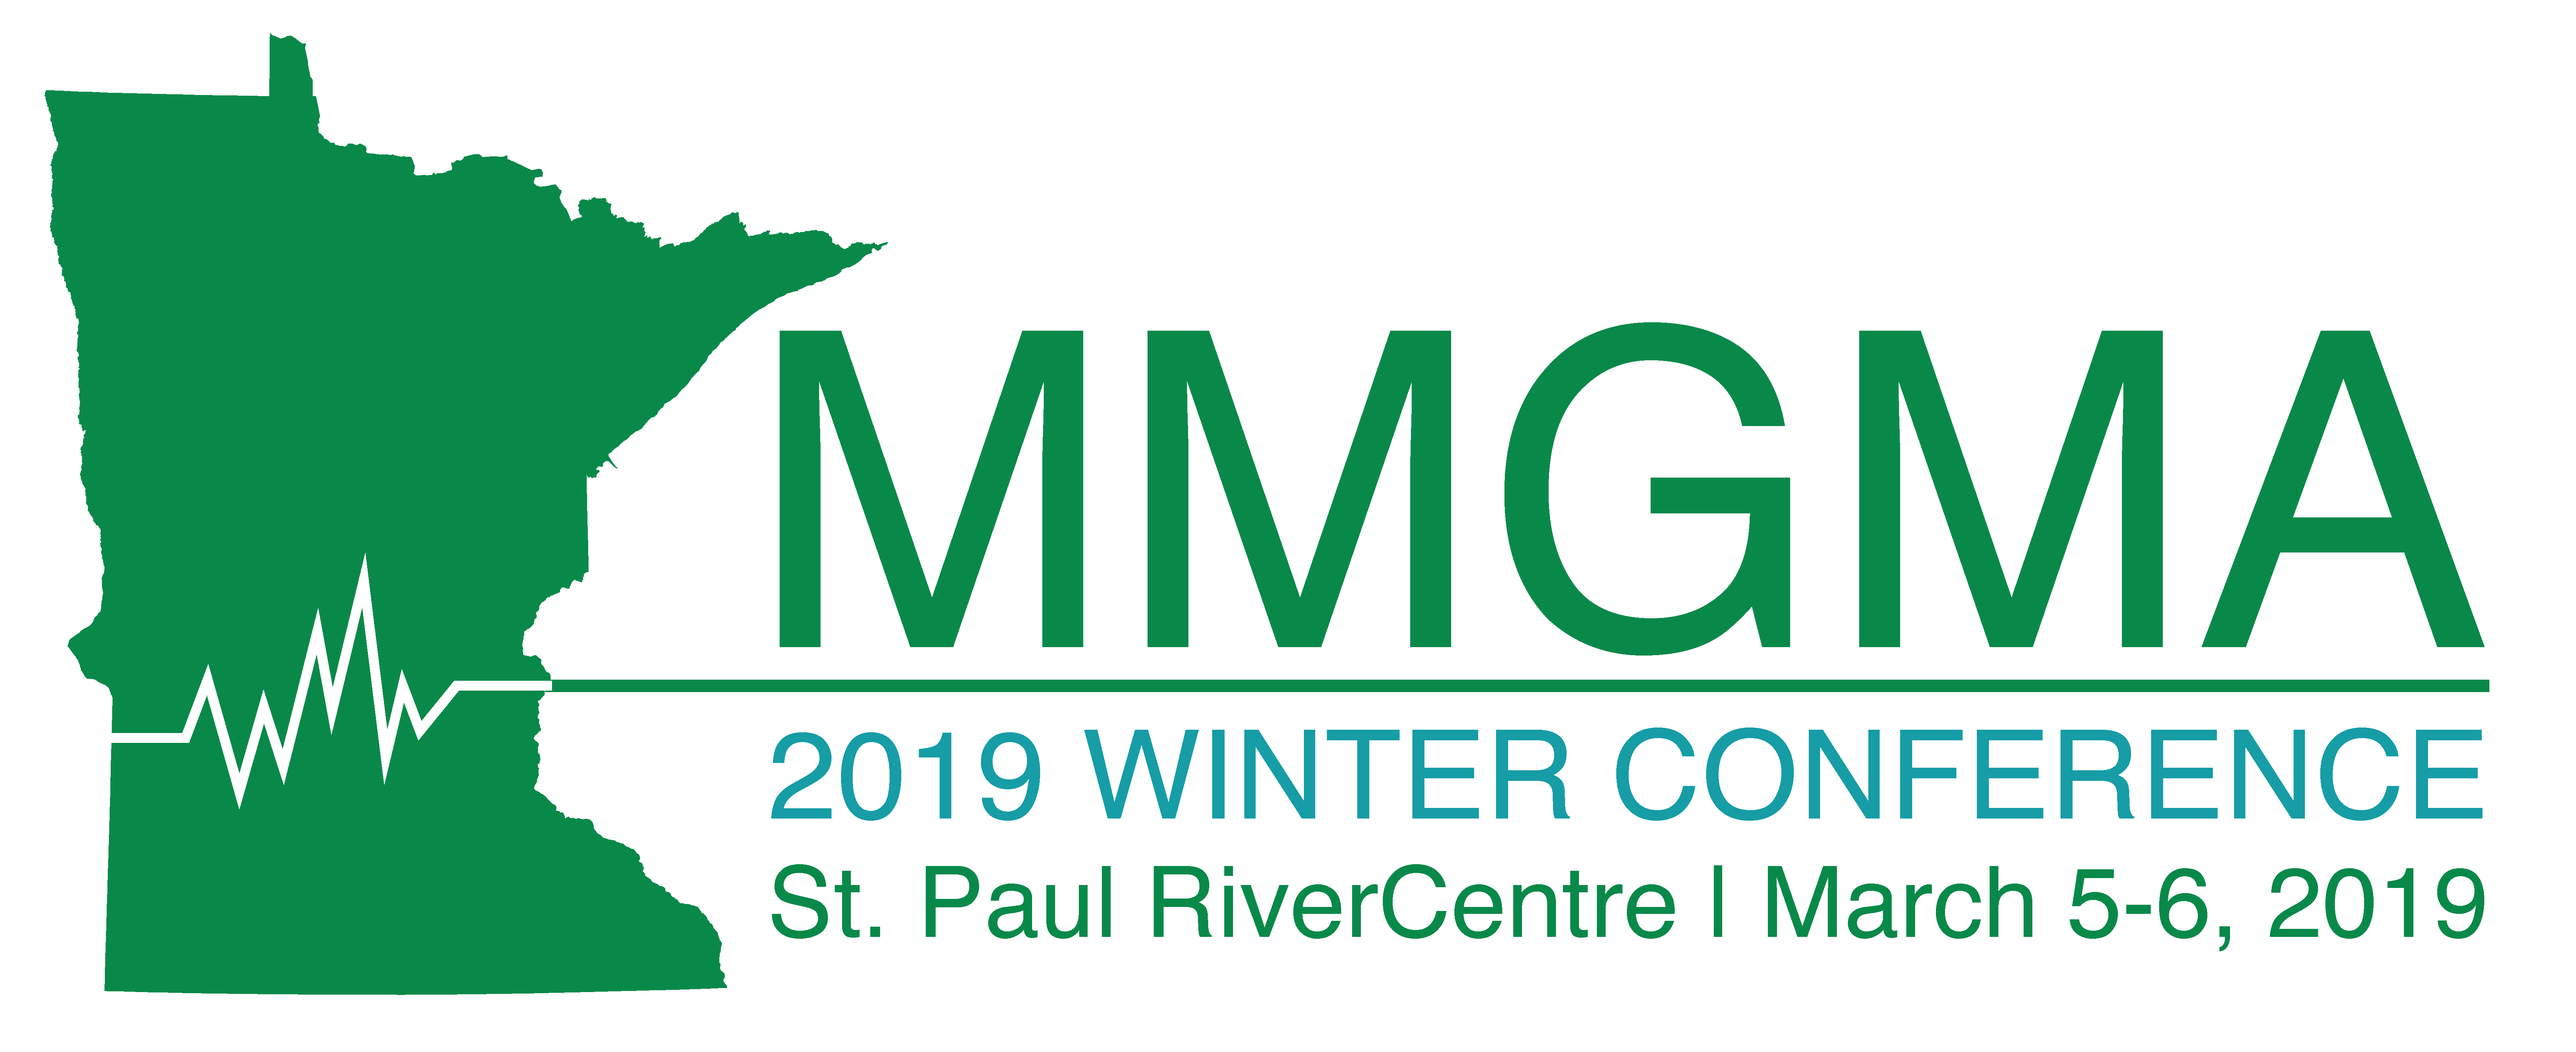 MMGMA 2019 Annual Winter Conference